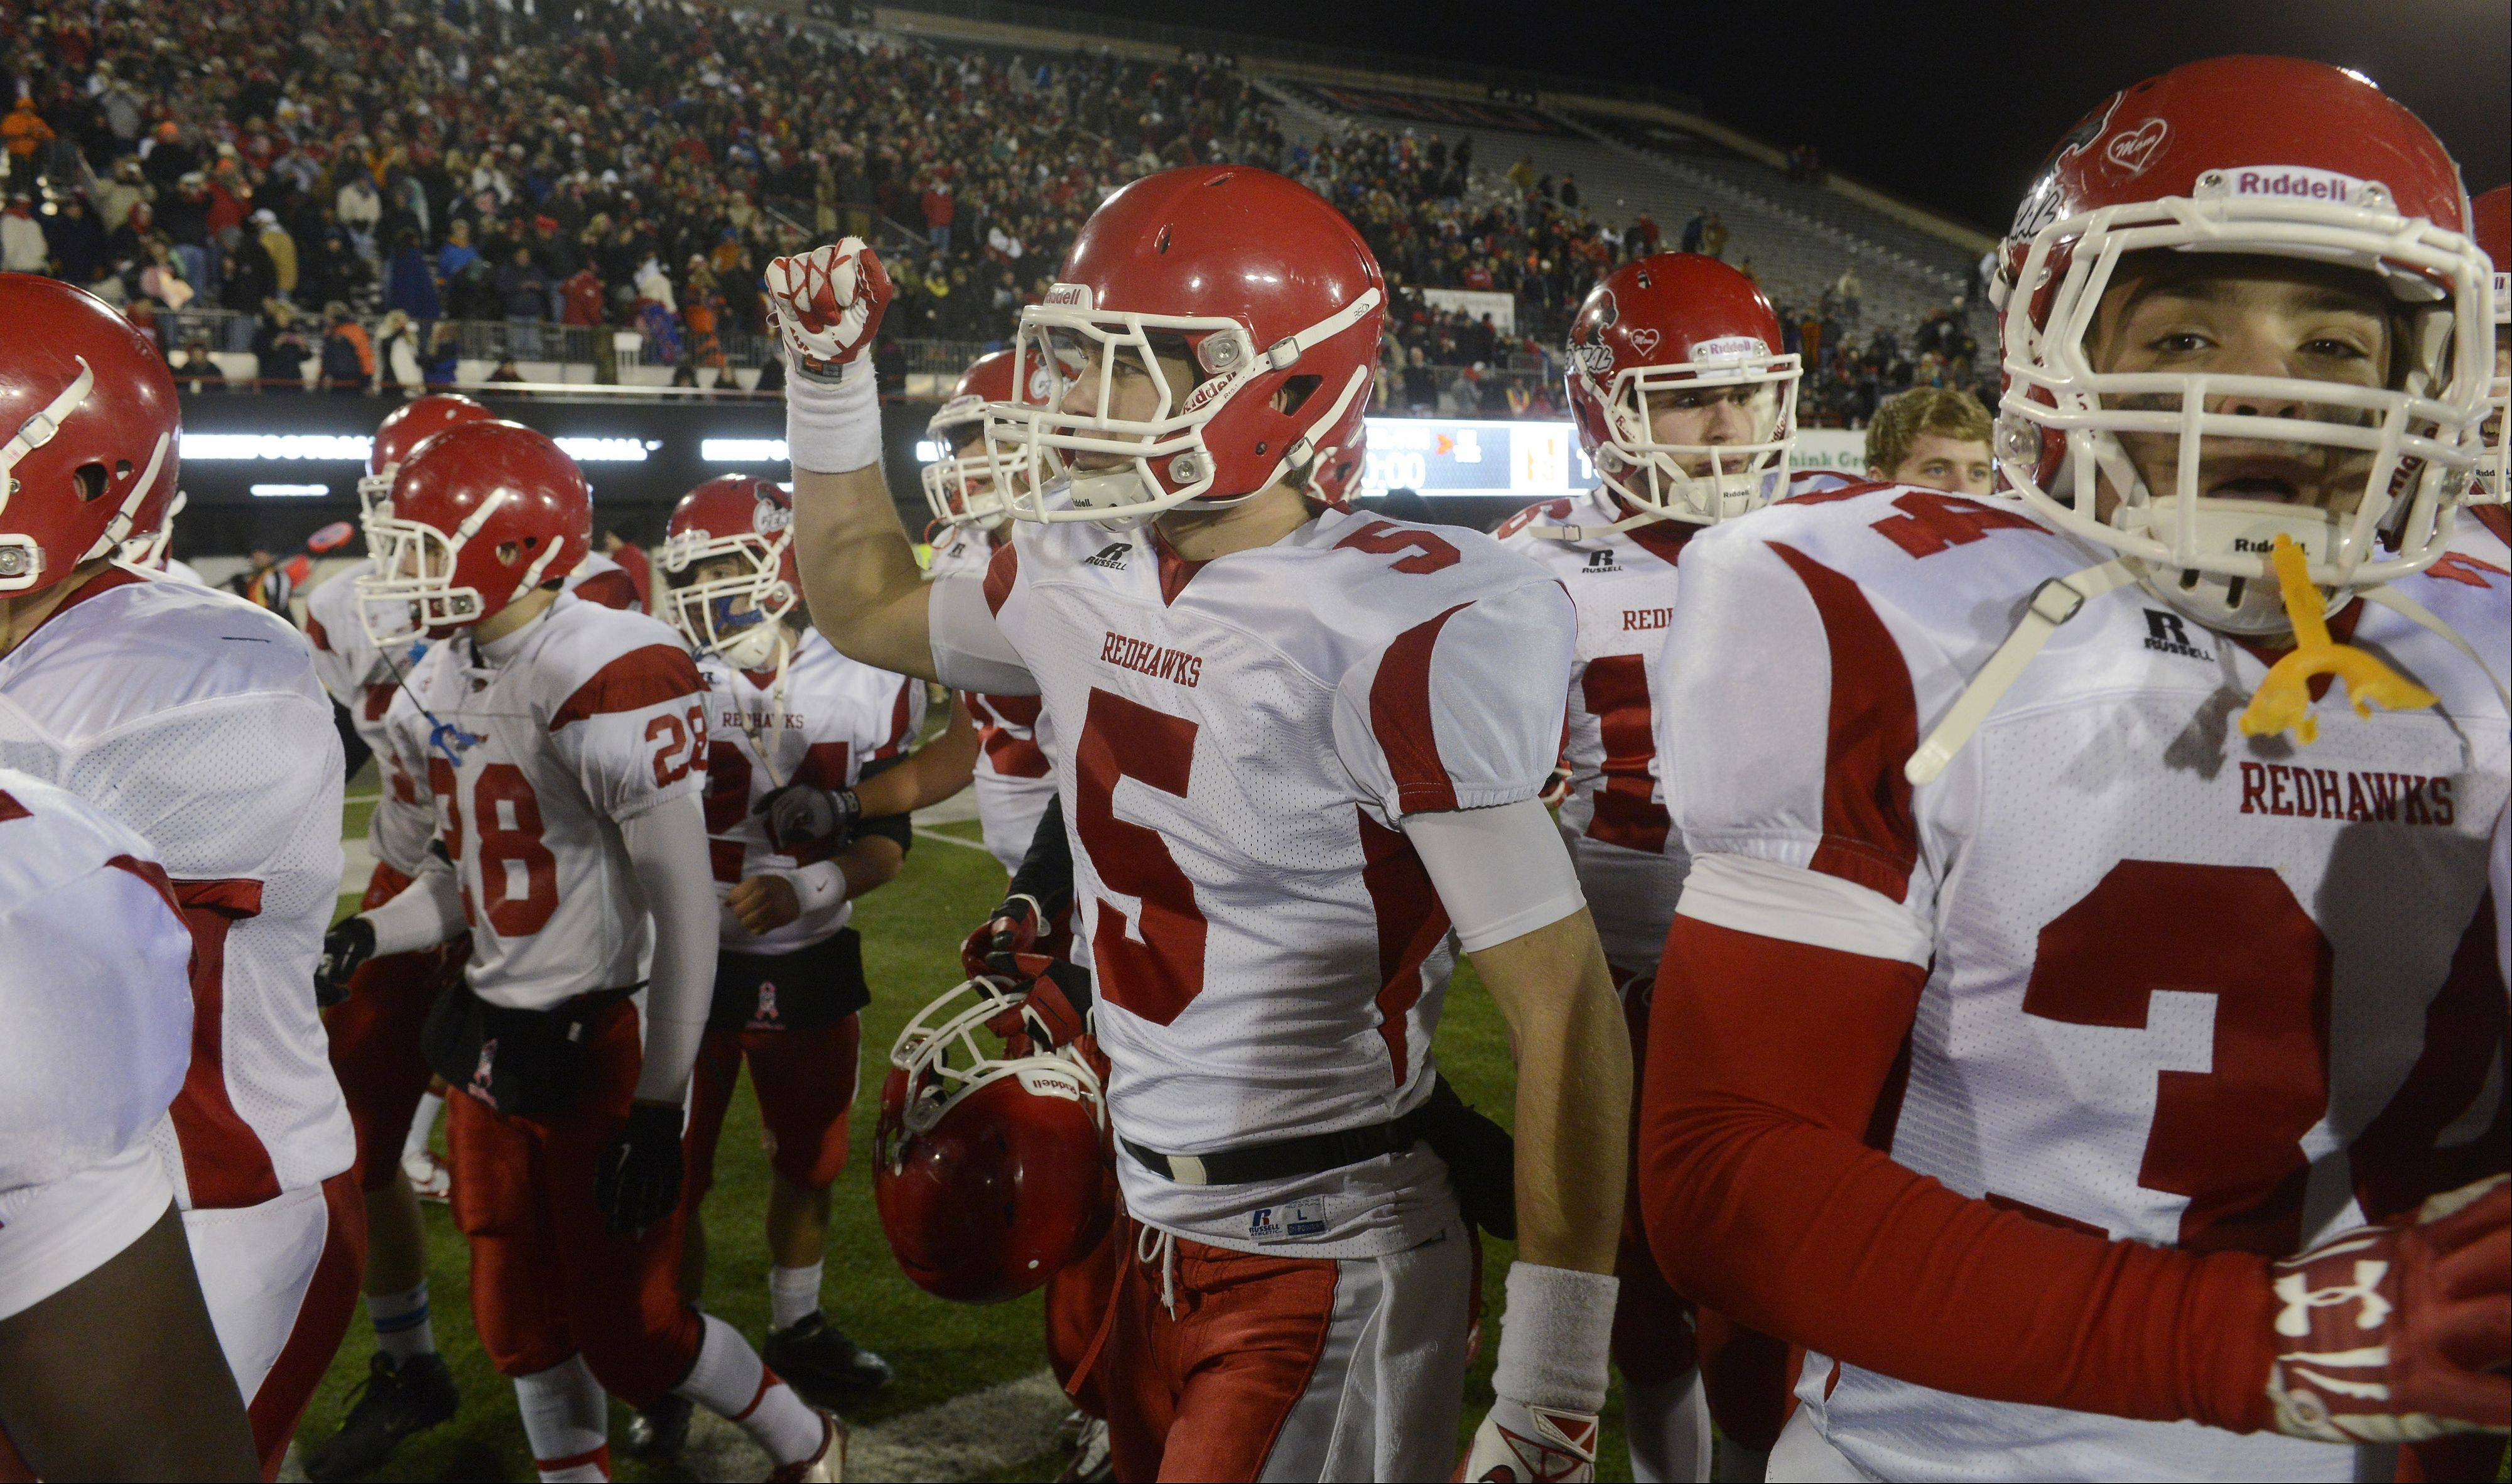 Naperville Central players celebrate and acknowledge the cheers from their fans after defeating Loyola Academy last month to win the Class 8A football title at Huskie Stadium in DeKalb on Nov. 30.